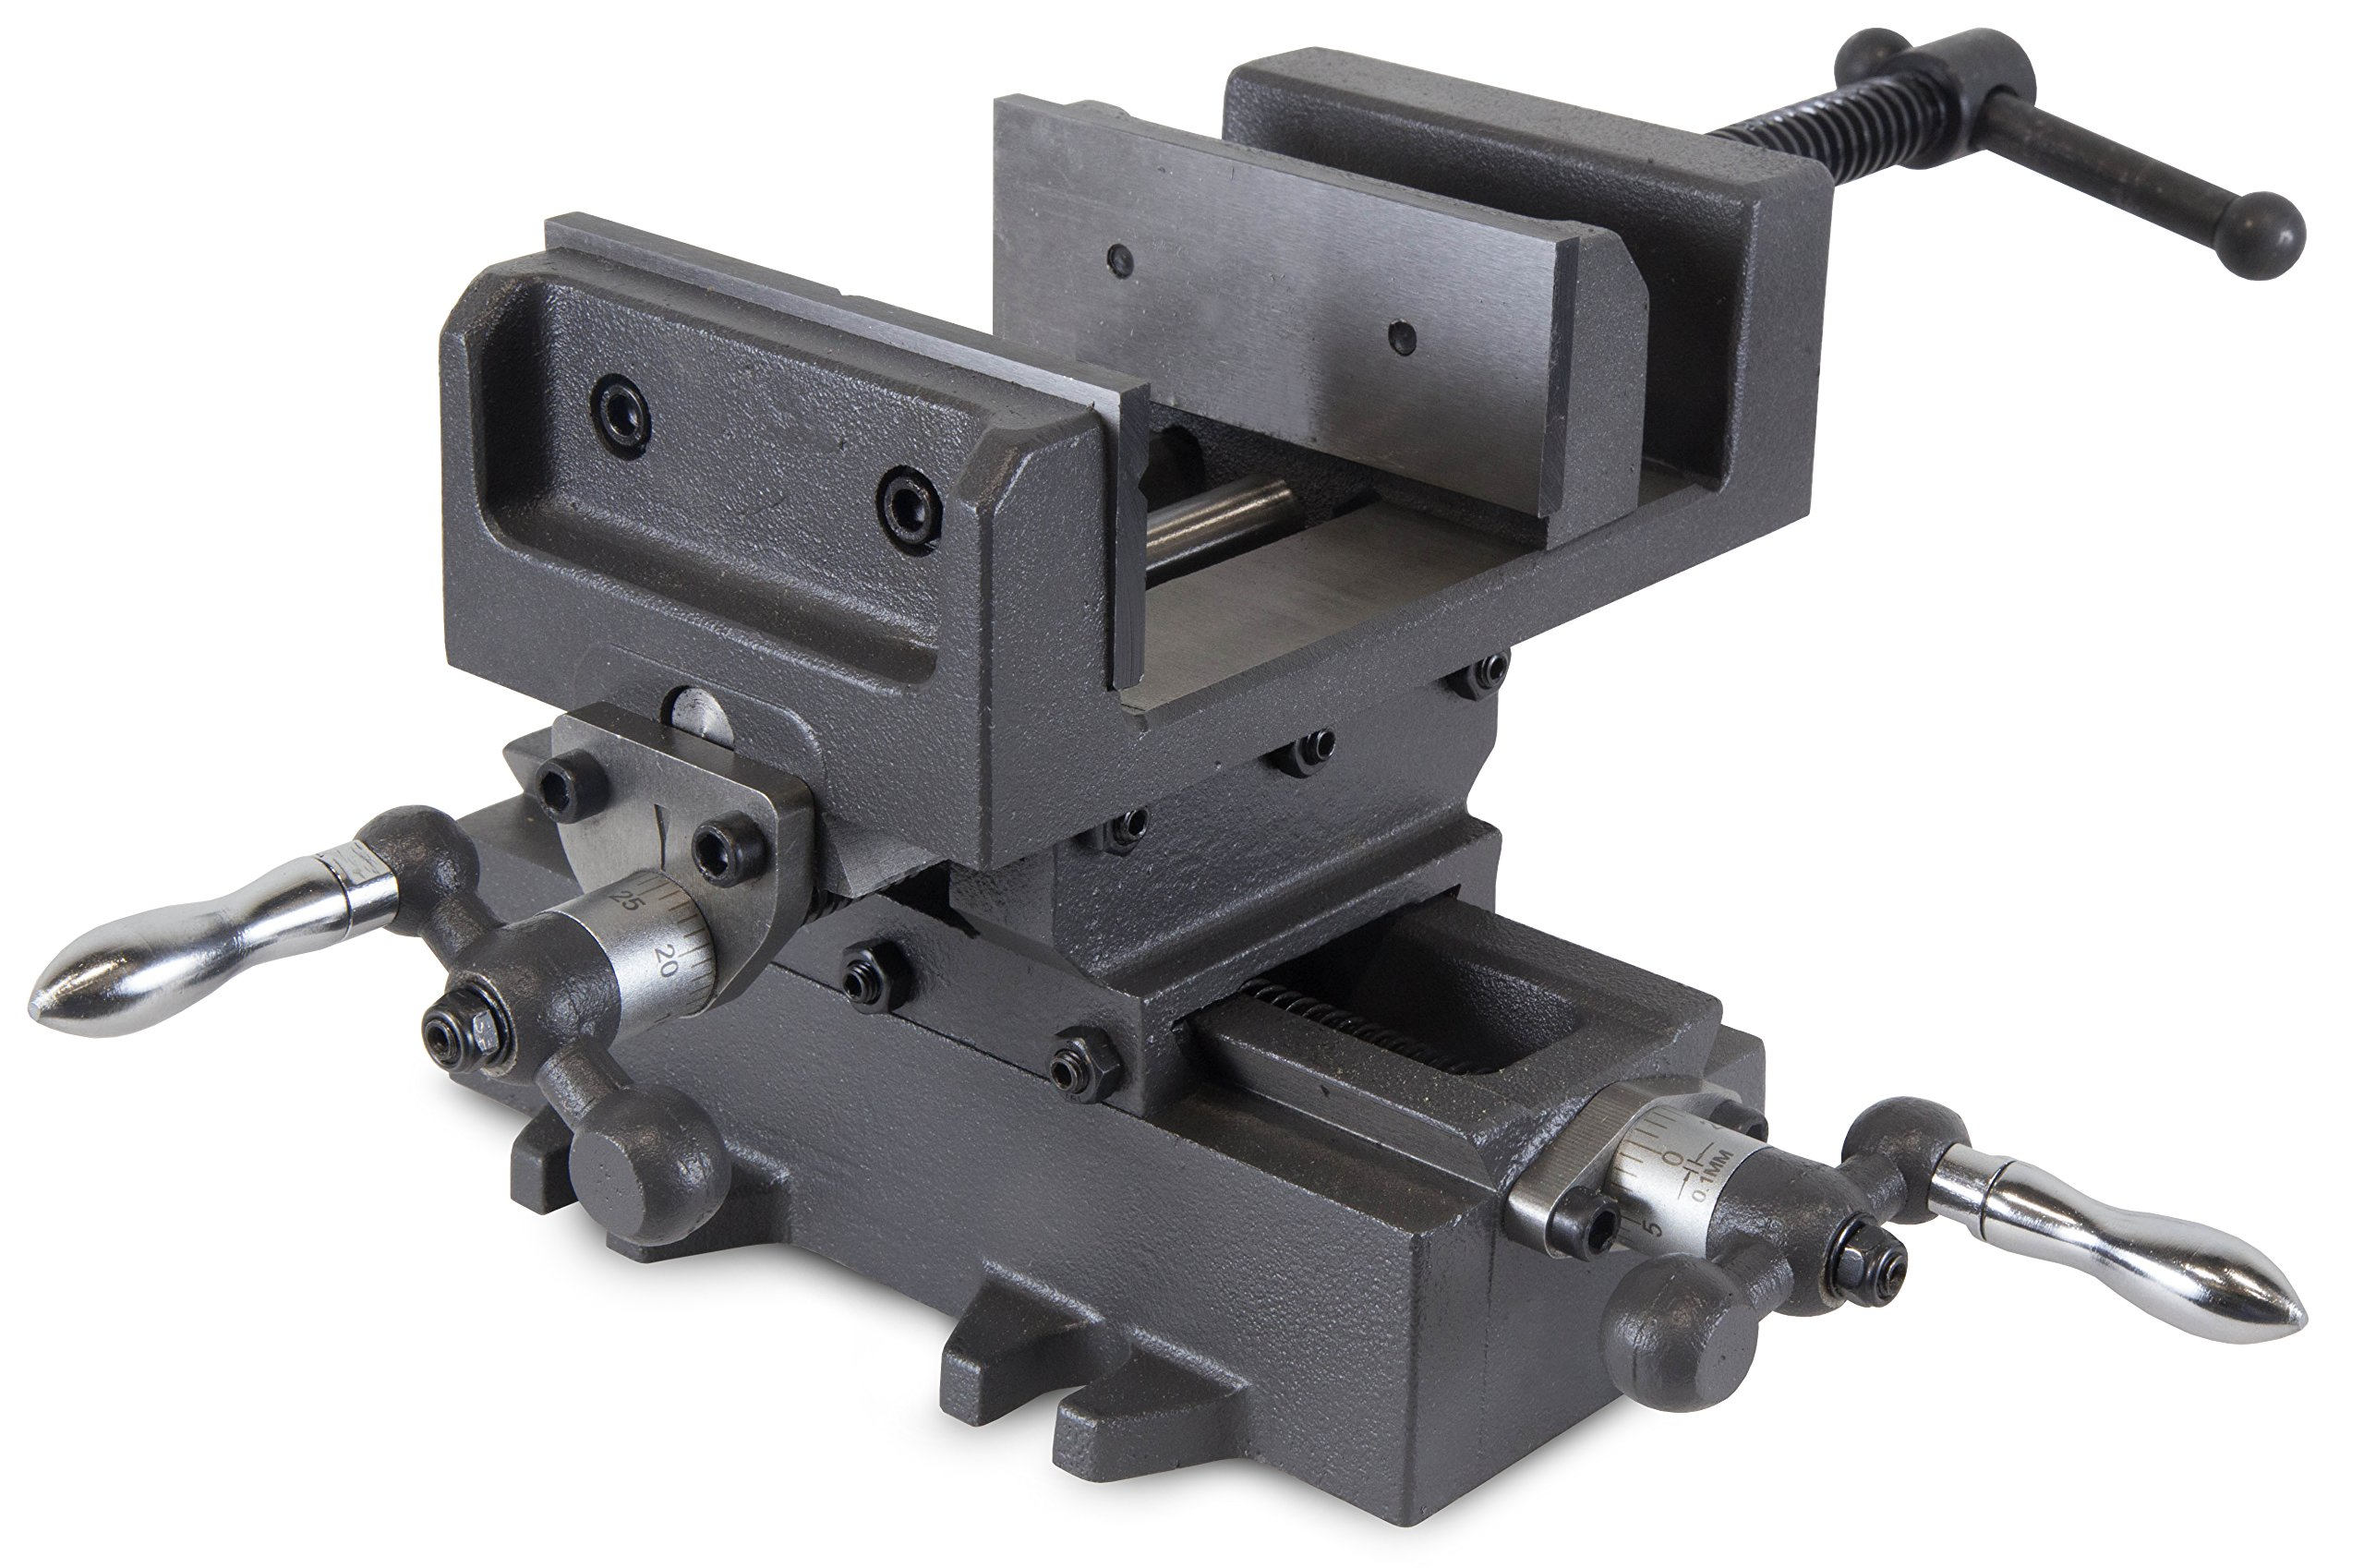 WEN 414CV 4.25'' Compound Cross Slide Industrial Strength Benchtop & Drill Press Vise